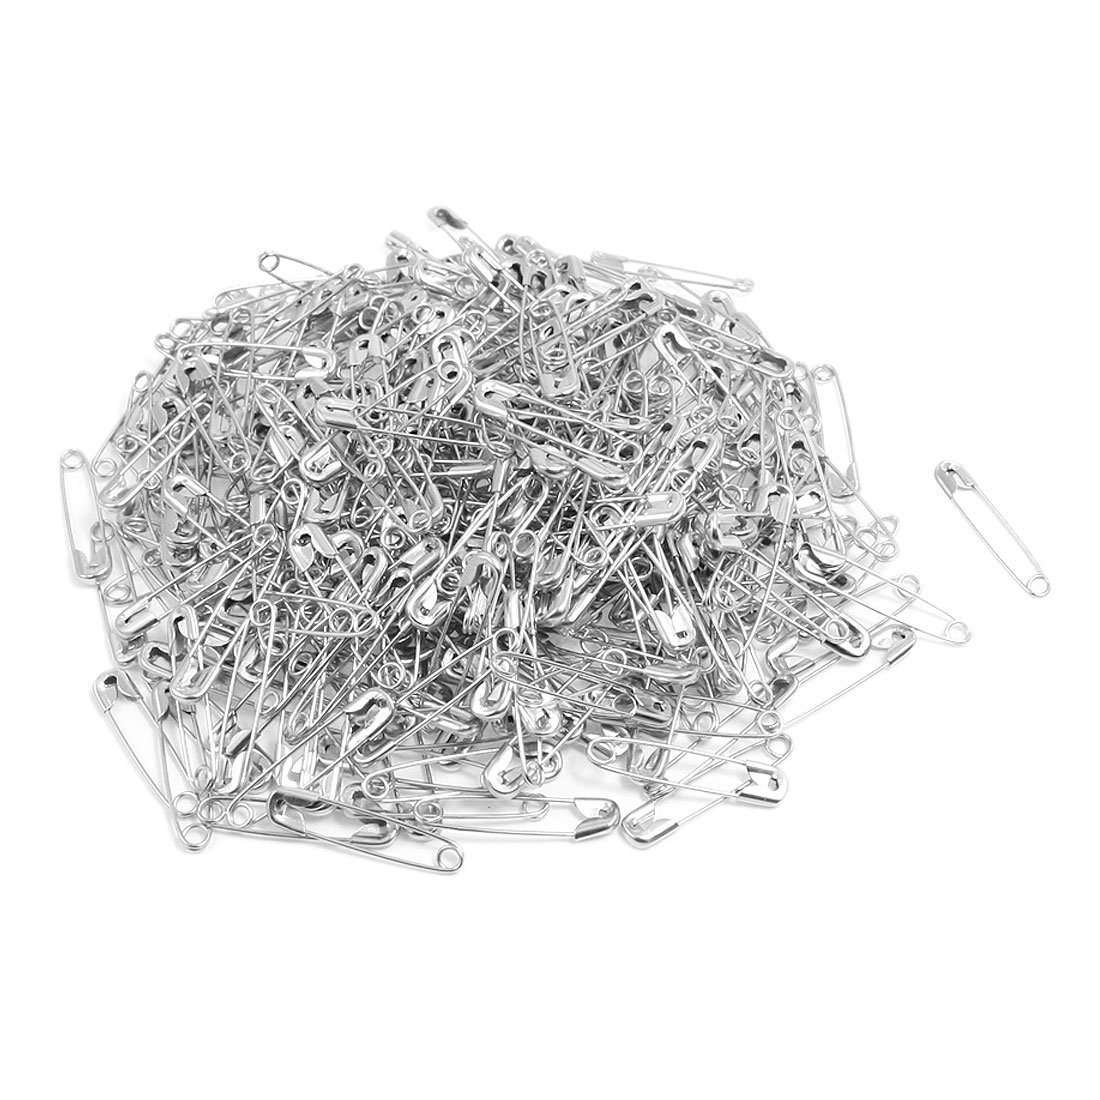 Clothing Fastener Tool Clip Buttons Silver TOne Metal Safety Pins 500 Pcs